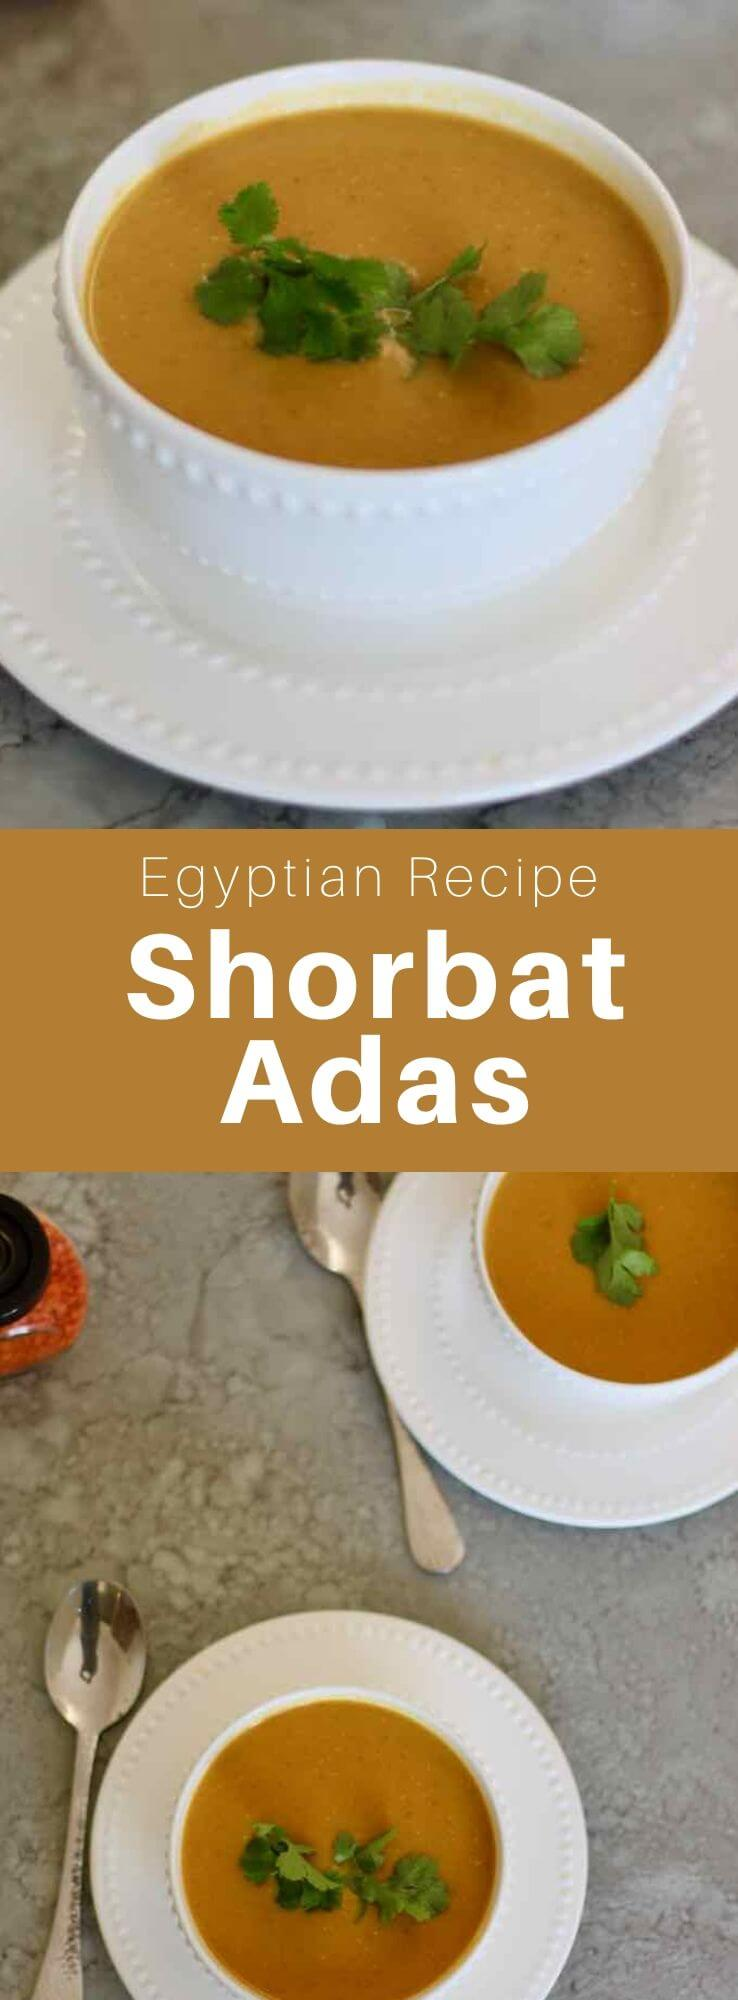 Shorbat adas is a vegan lentil soup from Egypt that is prepared with cumin. It is the staple meal of the month of Ramadan. #Egypt #EgyptianCuisine #EgyptianFood #EgyptianRecipe #WorldCuisine #196flavors